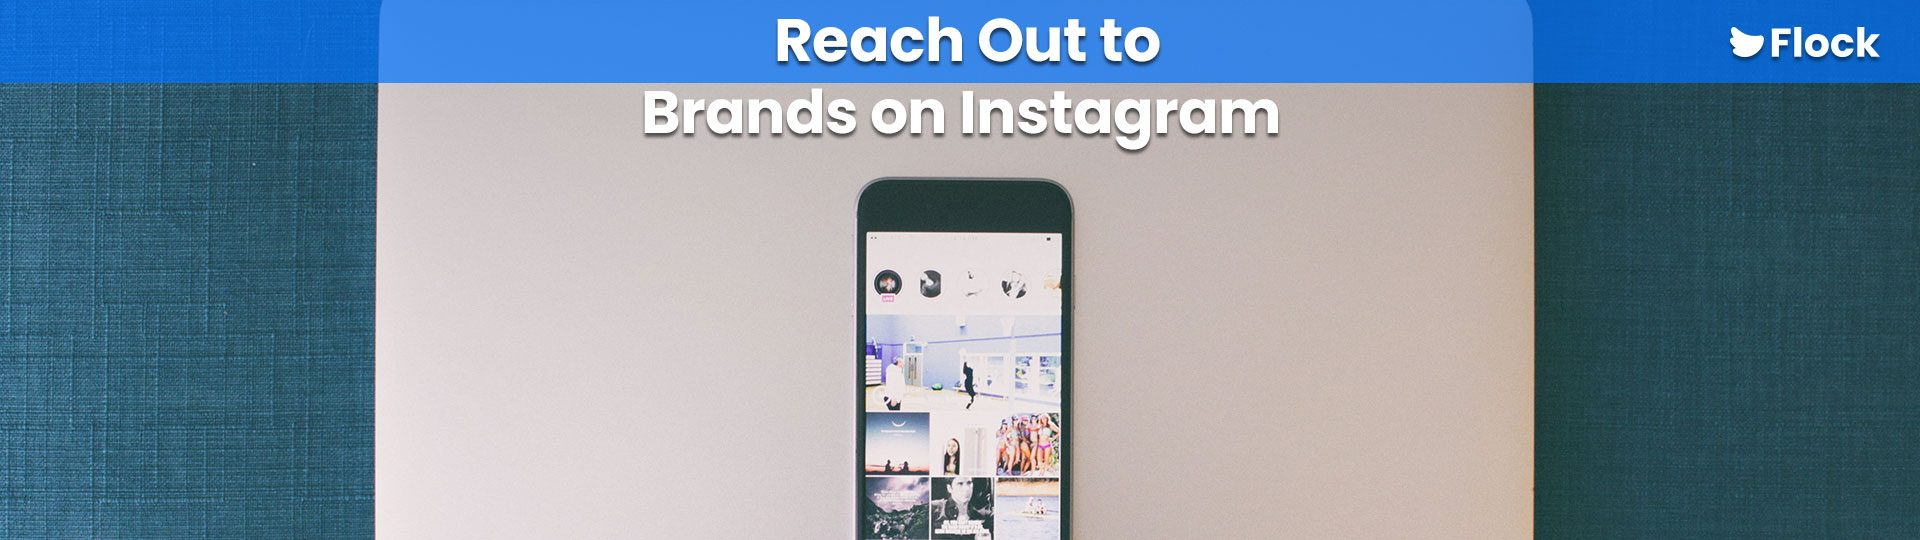 How to Reach Out to Brands on Instagram